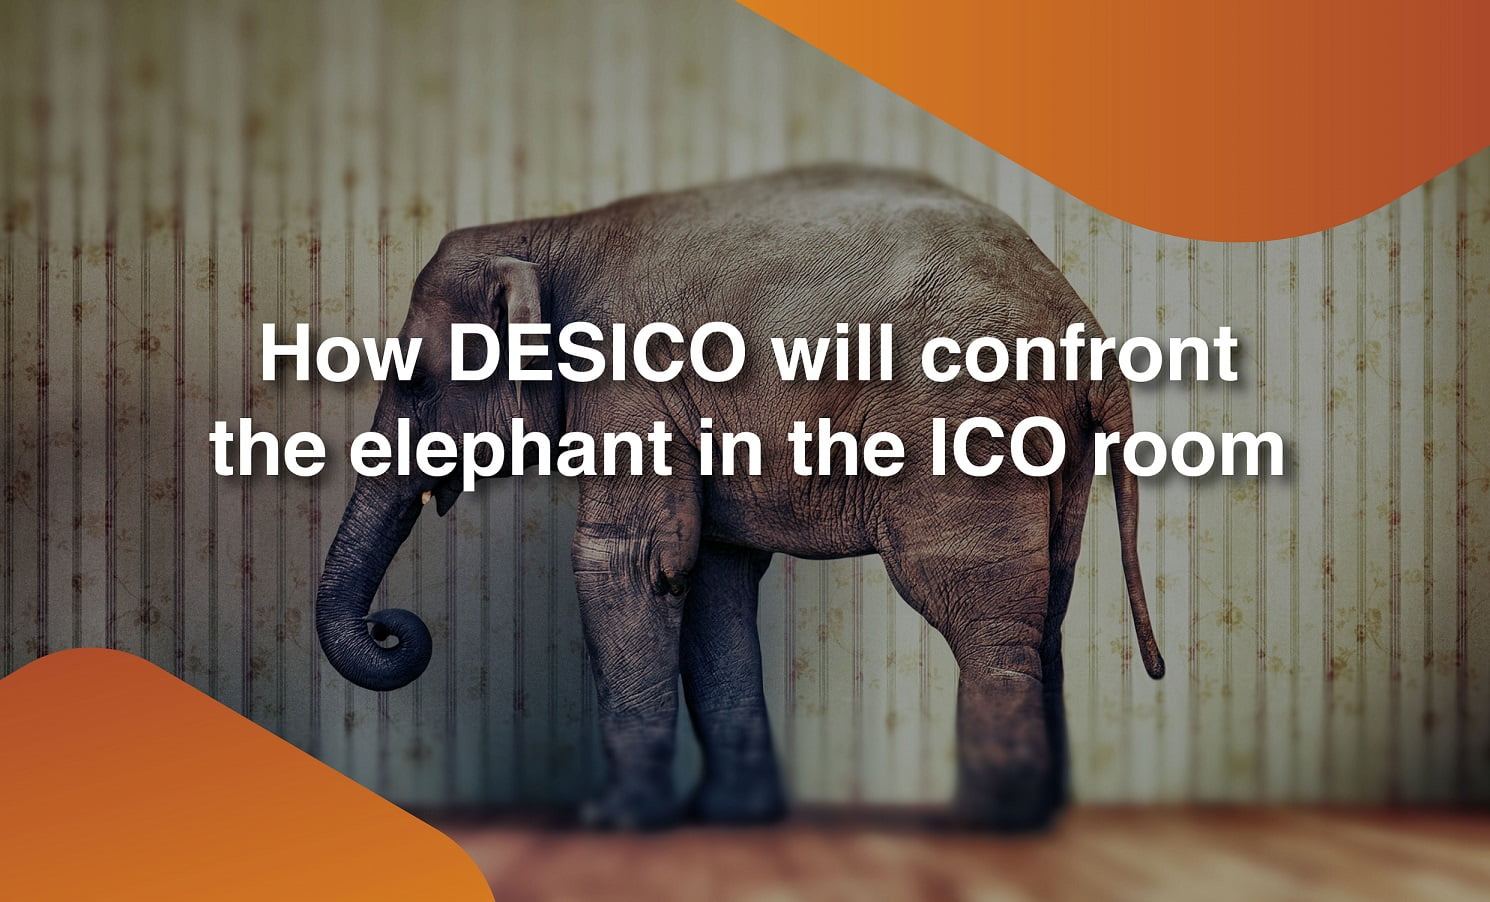 Elephant In Room That Needs To Be >> What Needs To Be Done With The Elephant In The Ico Room Newsbtc